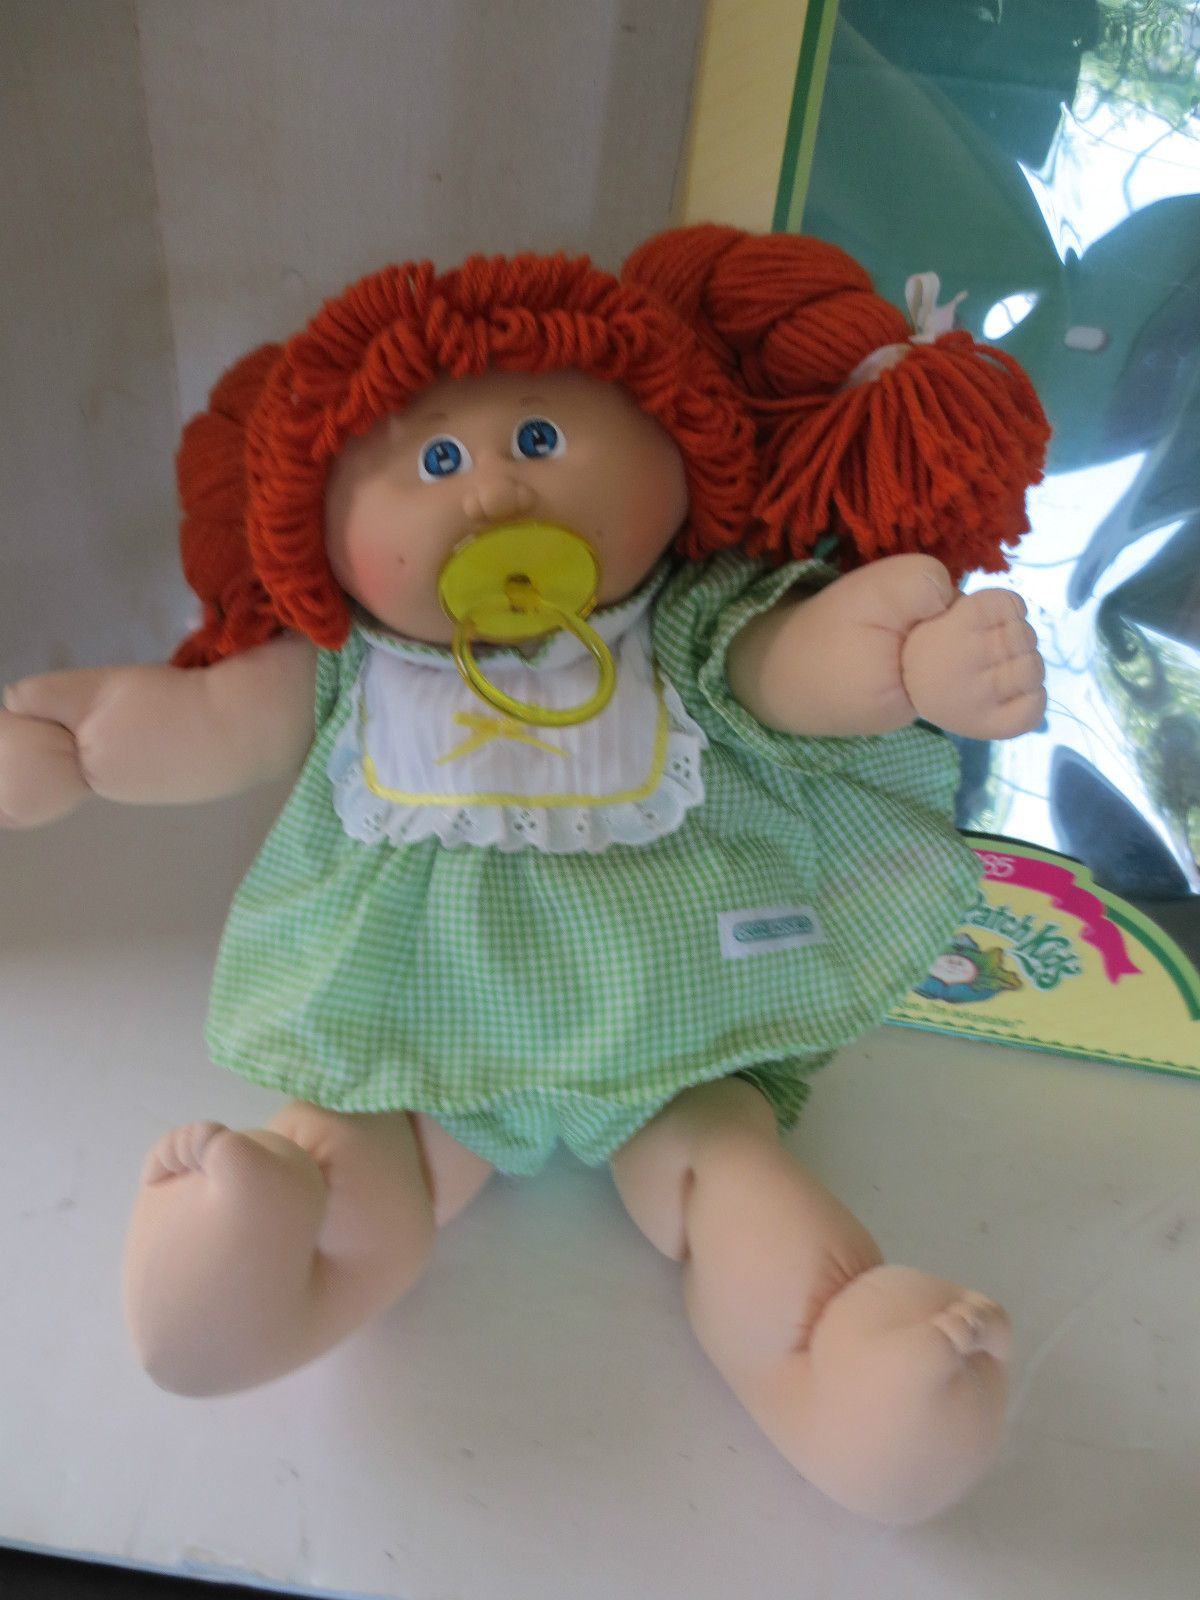 Vintage 1985 Cabbage Patch Kids Red Hair Blue Eyes Pacifier Birth Certificate Vintage Cabbage Patch Dolls Cabbage Patch Babies Patch Kids